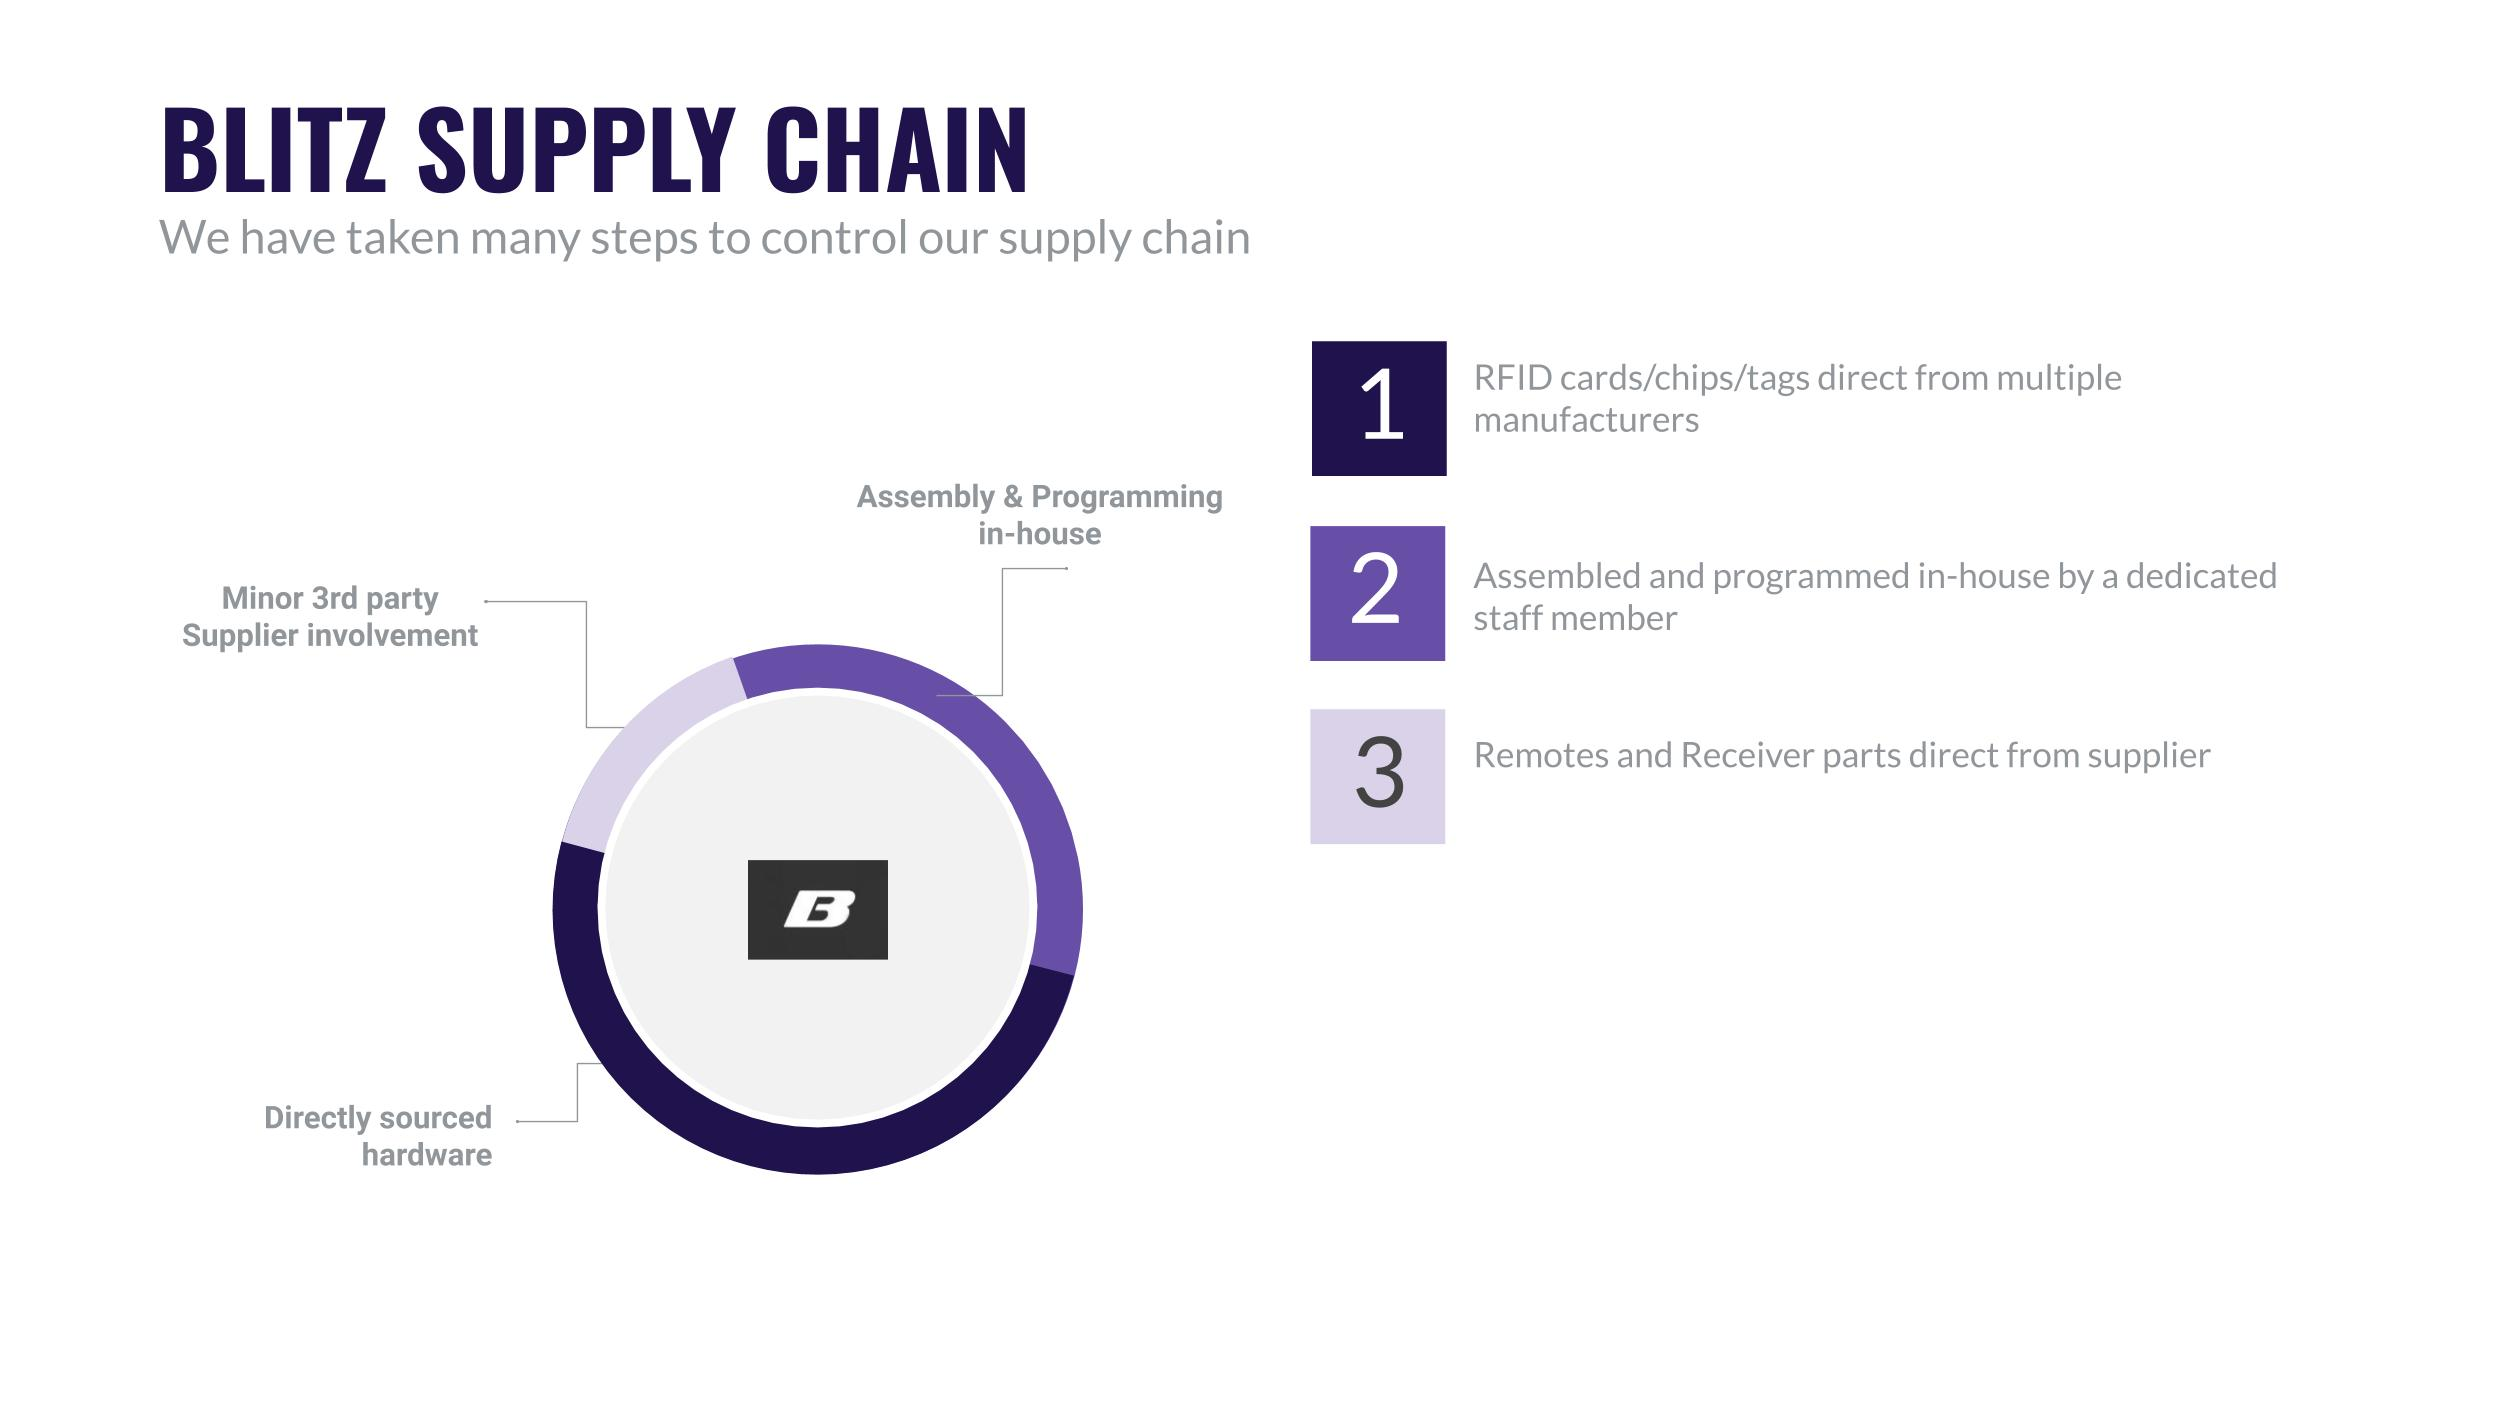 Blitz security supply chain graphic